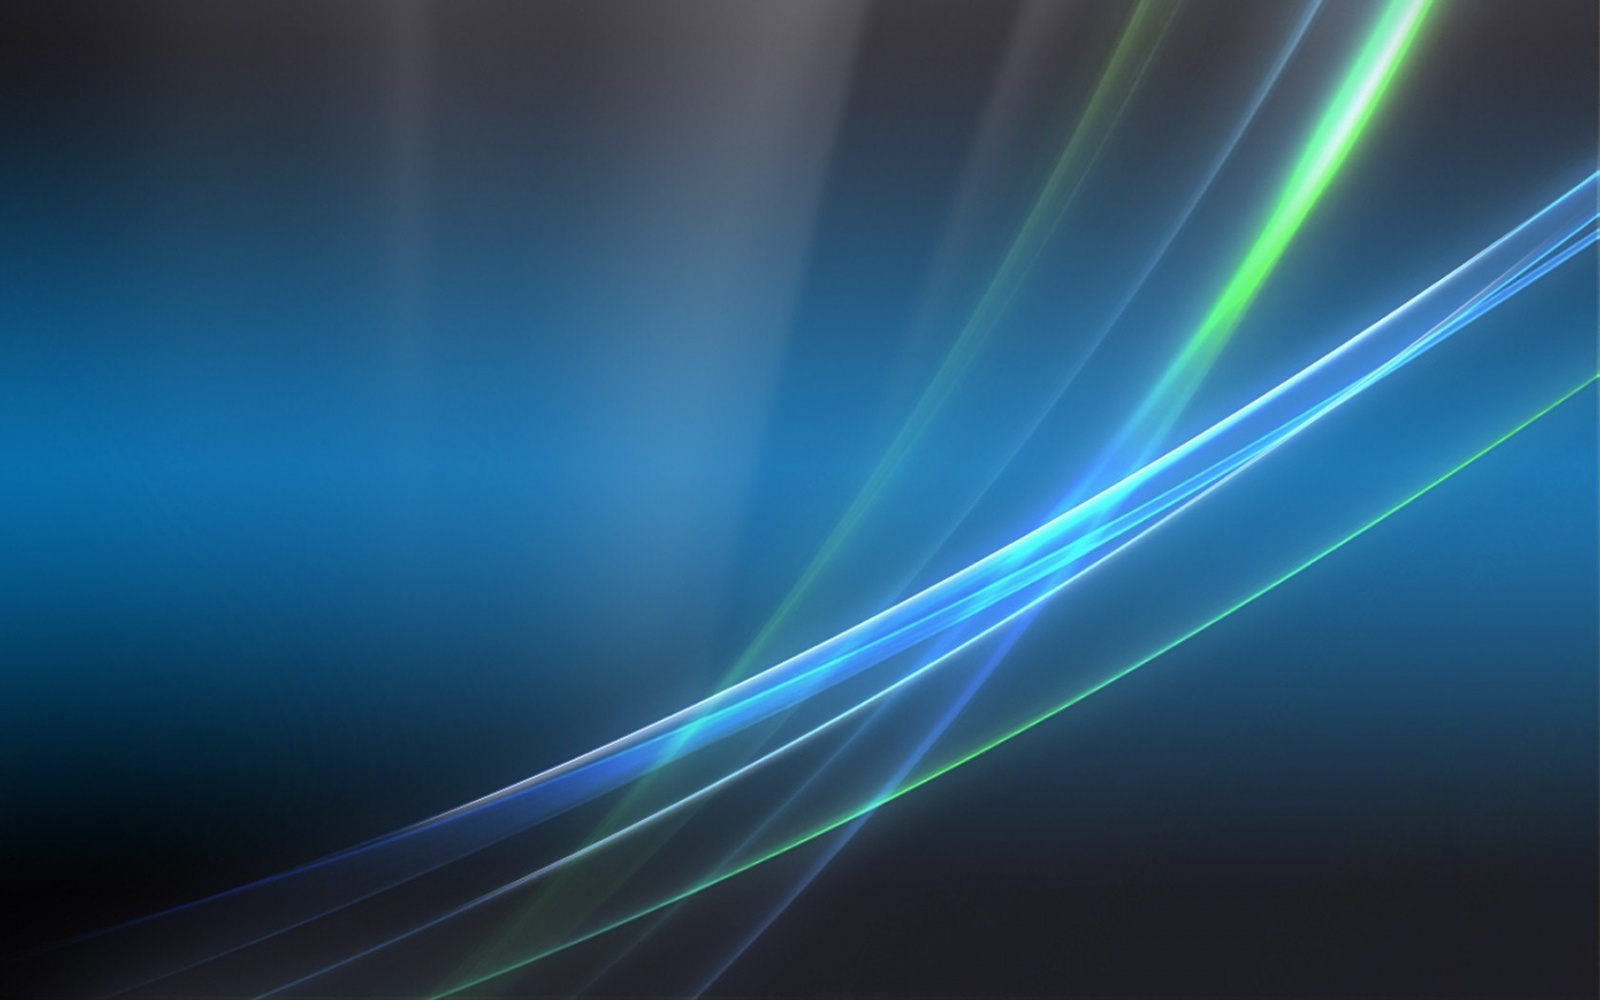 Windows 7 Wallpapers HD Nice Wallpapers 1600x1000